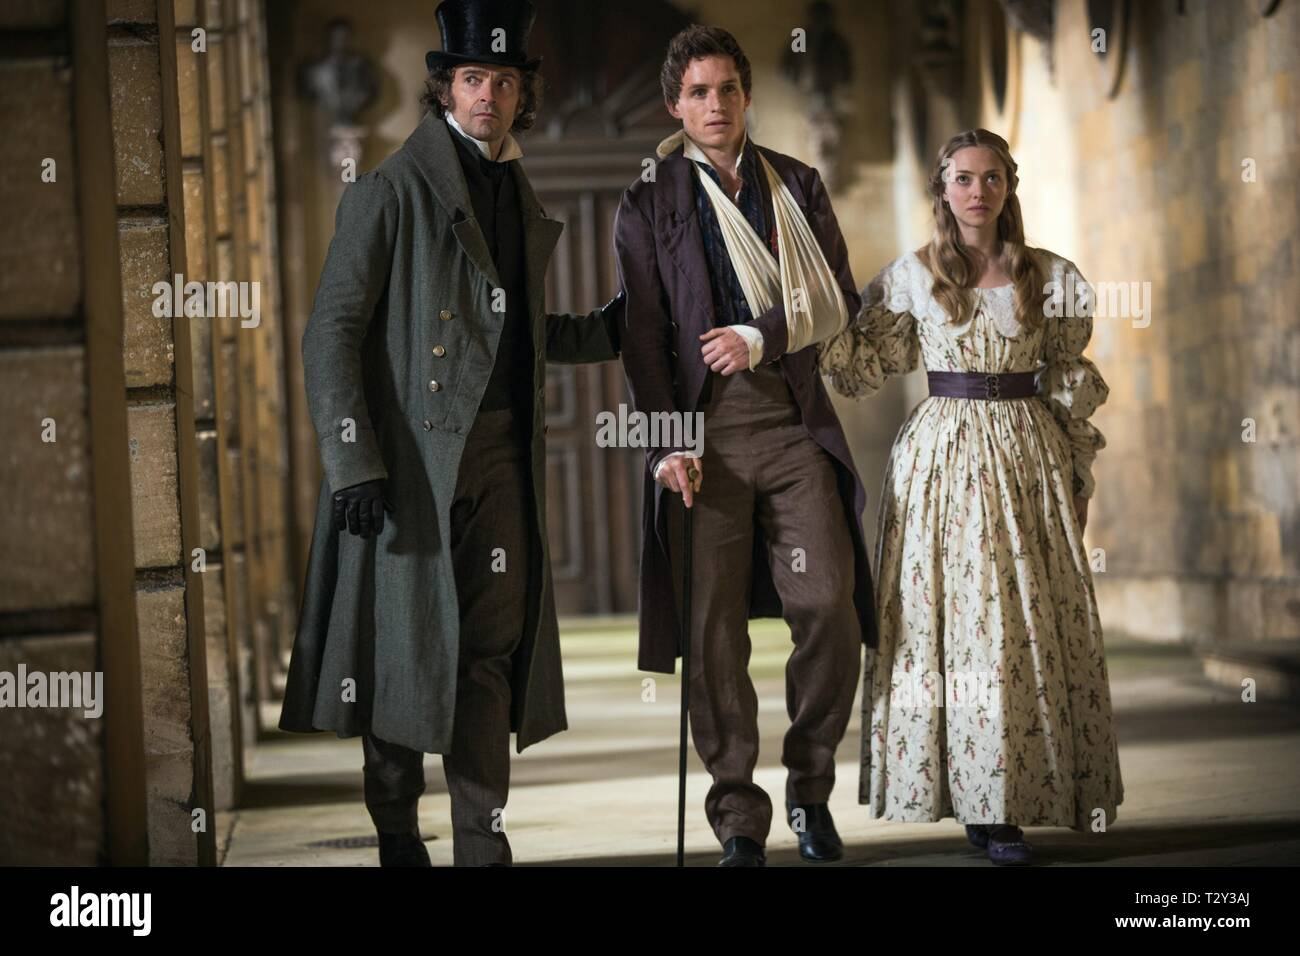 Hugh Jackman Eddie Redmayne Amanda Seyfried Les Miserables 2012 Stock Photo Alamy